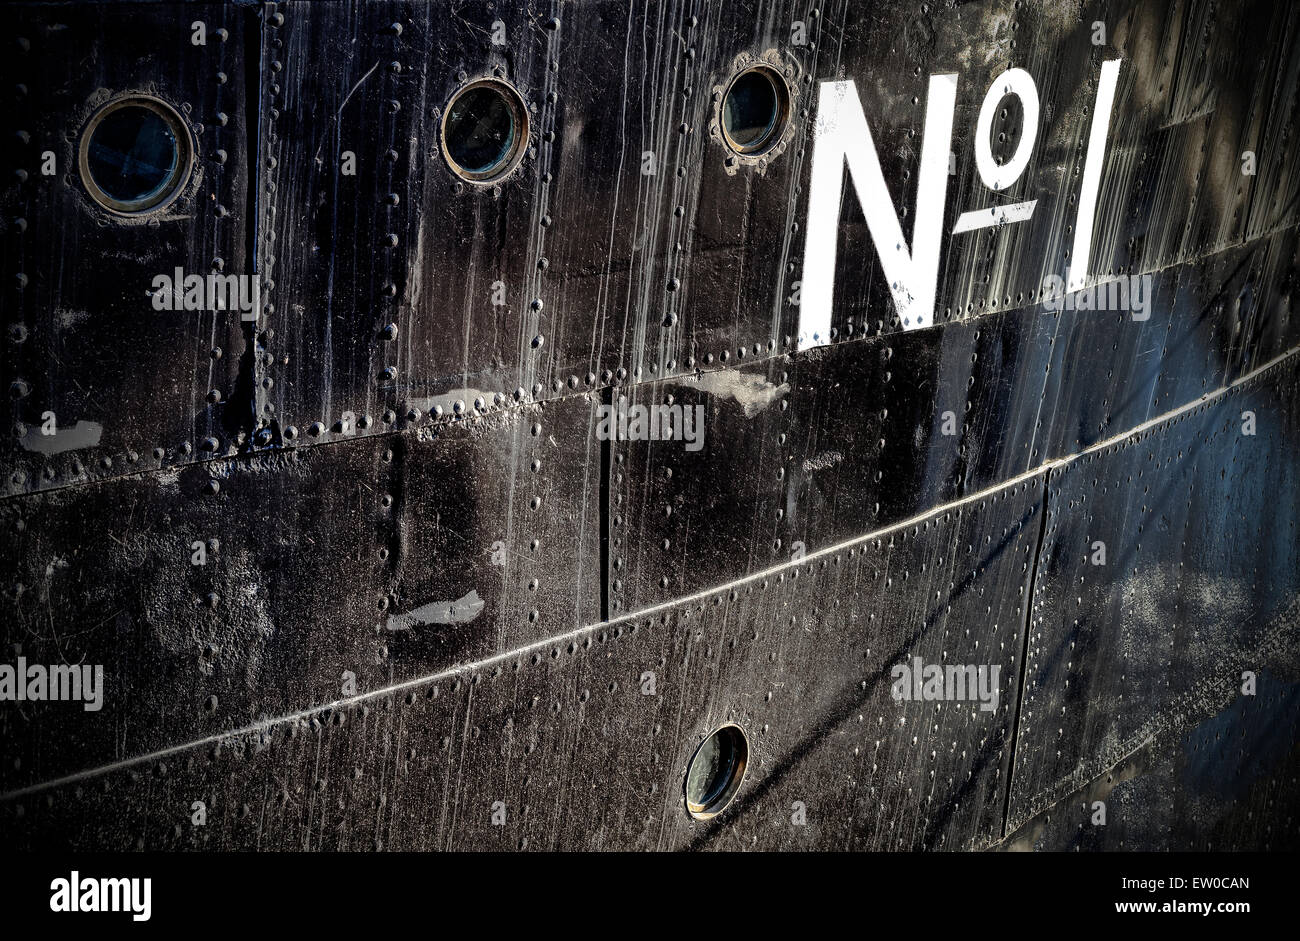 Photo of a number one sign on a grungy metal ship side, space for text. - Stock Image